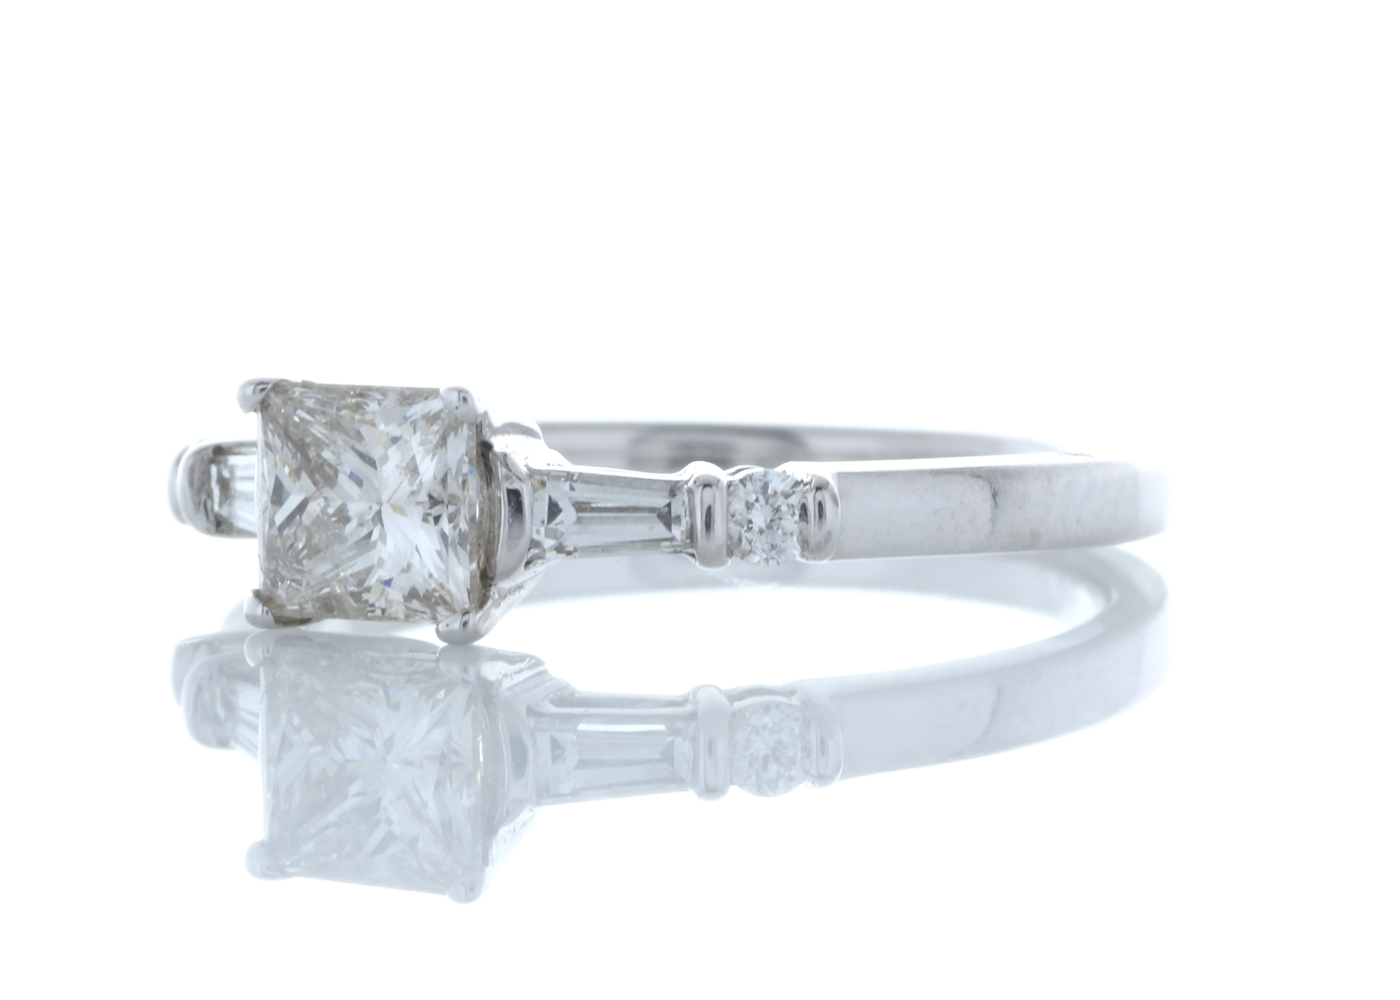 18ct White Gold Single Stone Princess Cut Diamond Ring With Set Shoulders (0.72) 0.96 Carats - Image 2 of 5